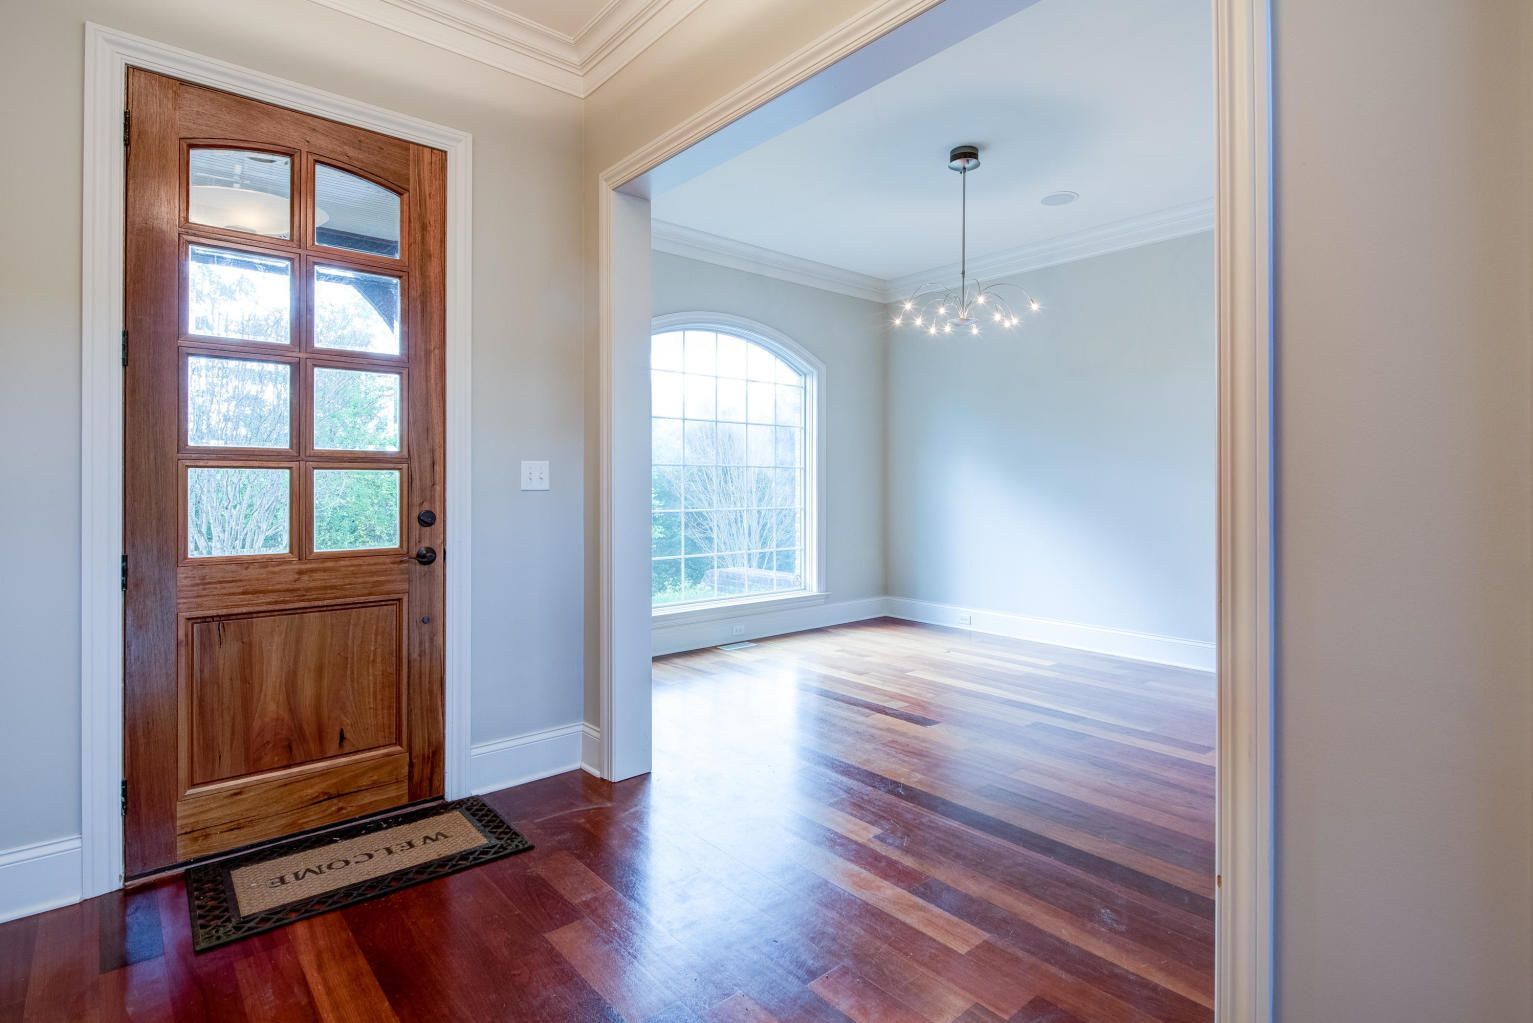 Entryway - open to Dining Room